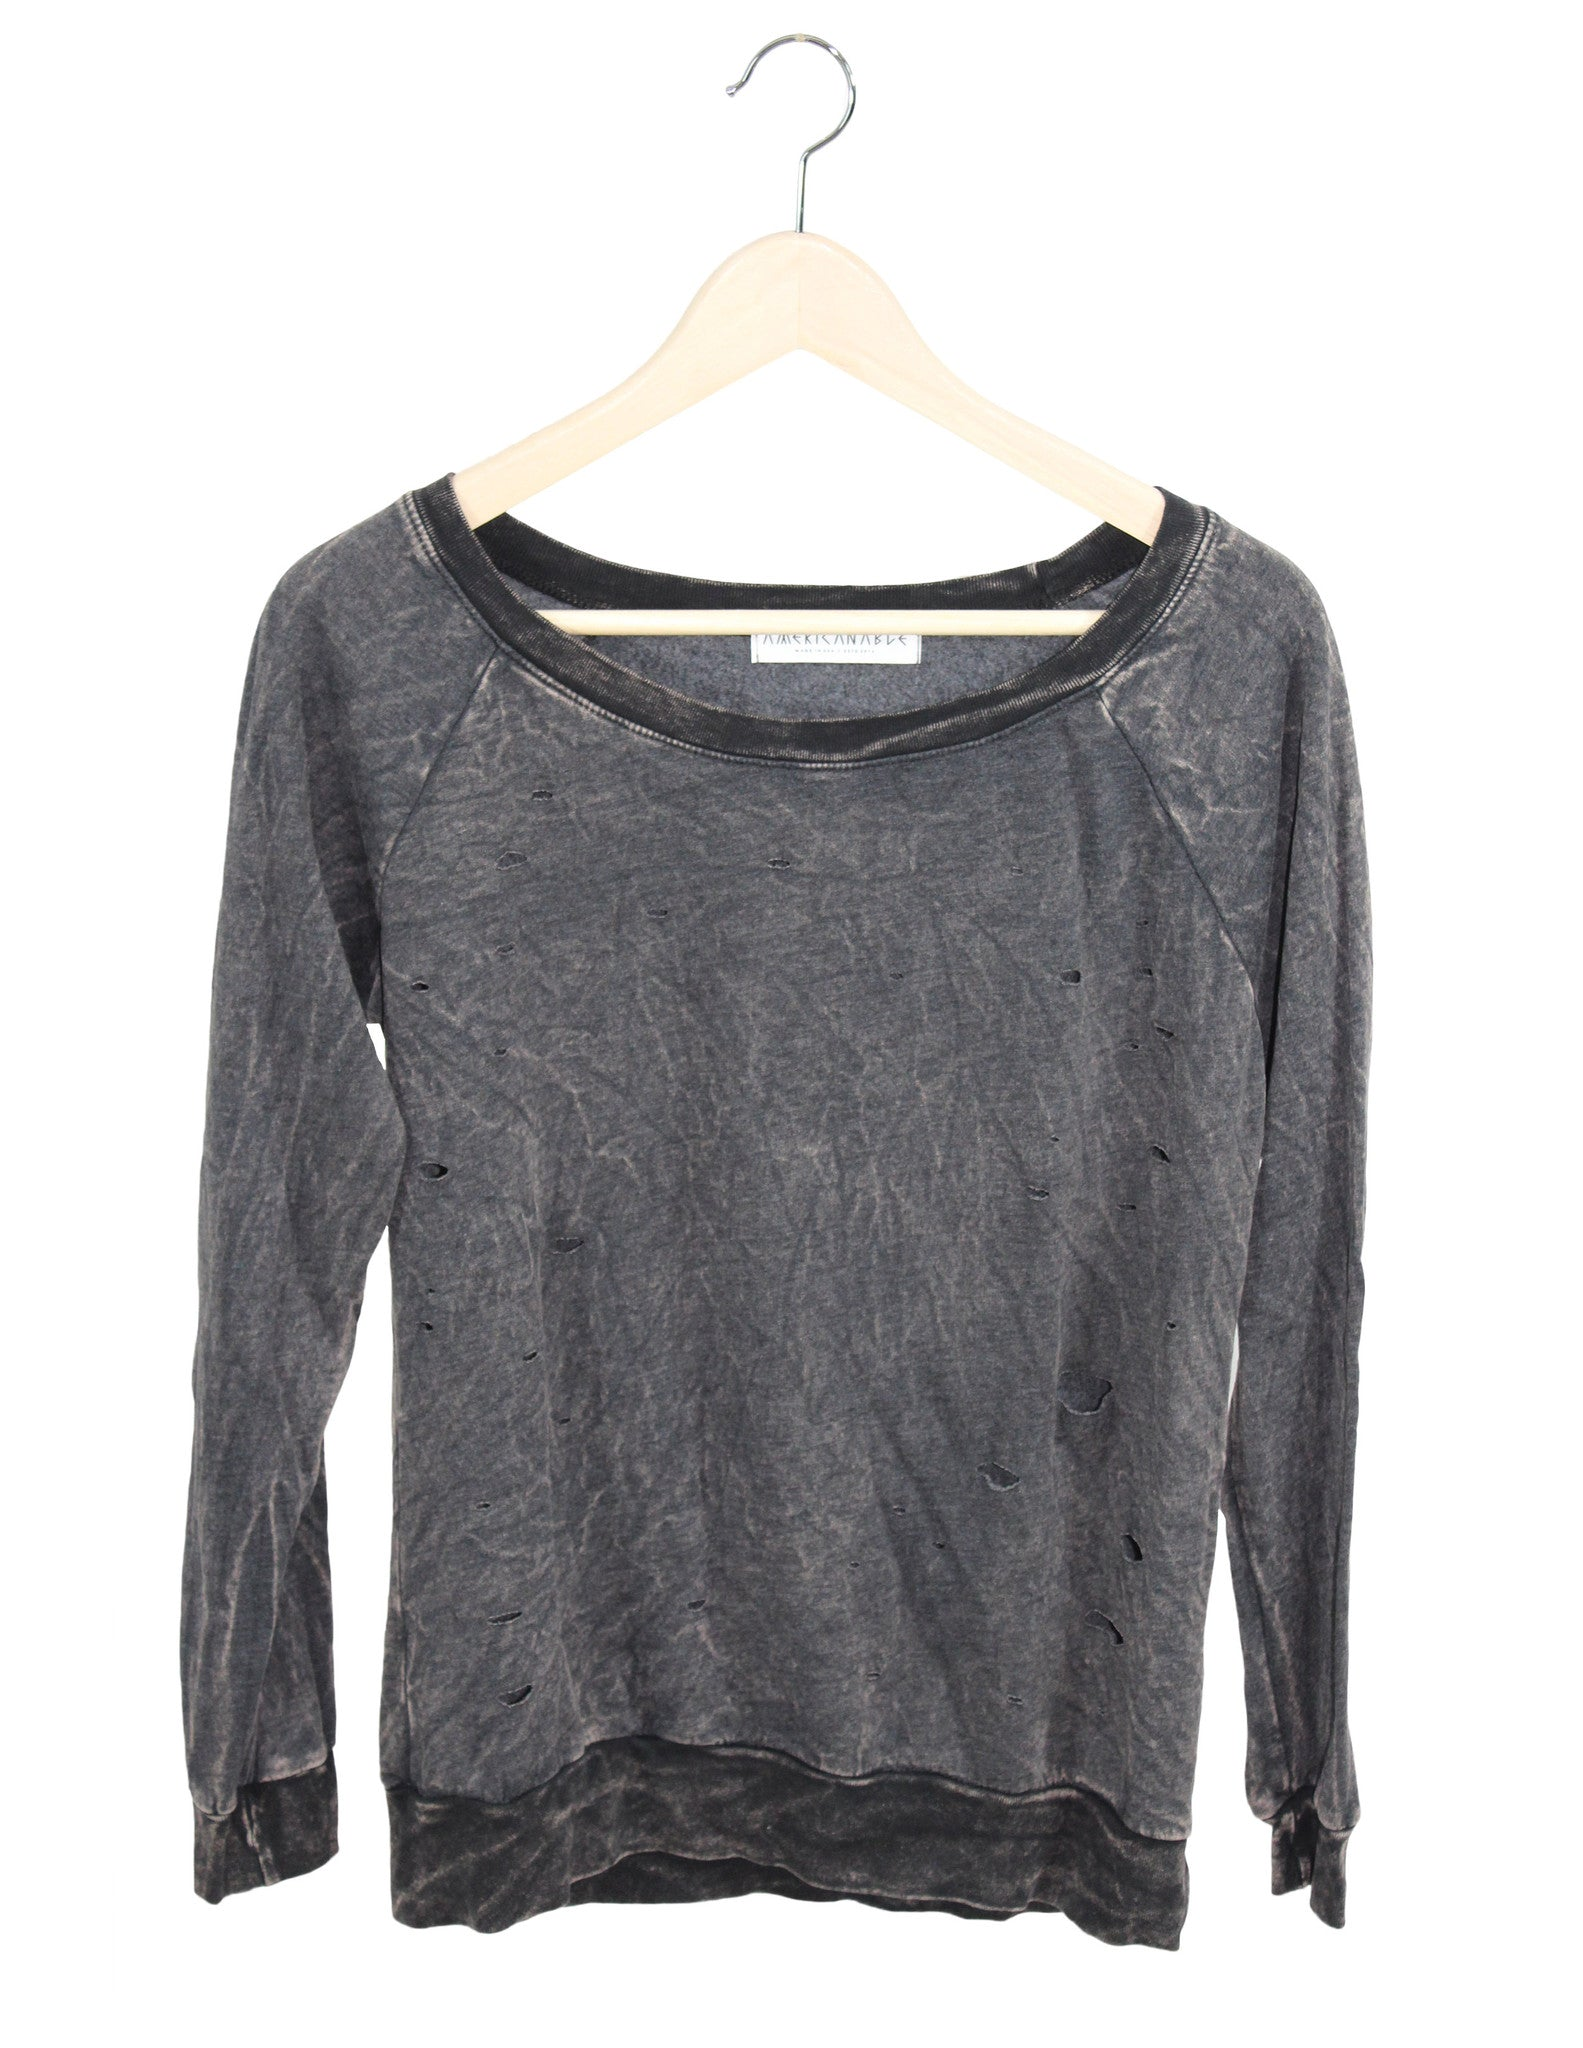 Holy Mineral Washed Sweatshirt / Ethical Fashion